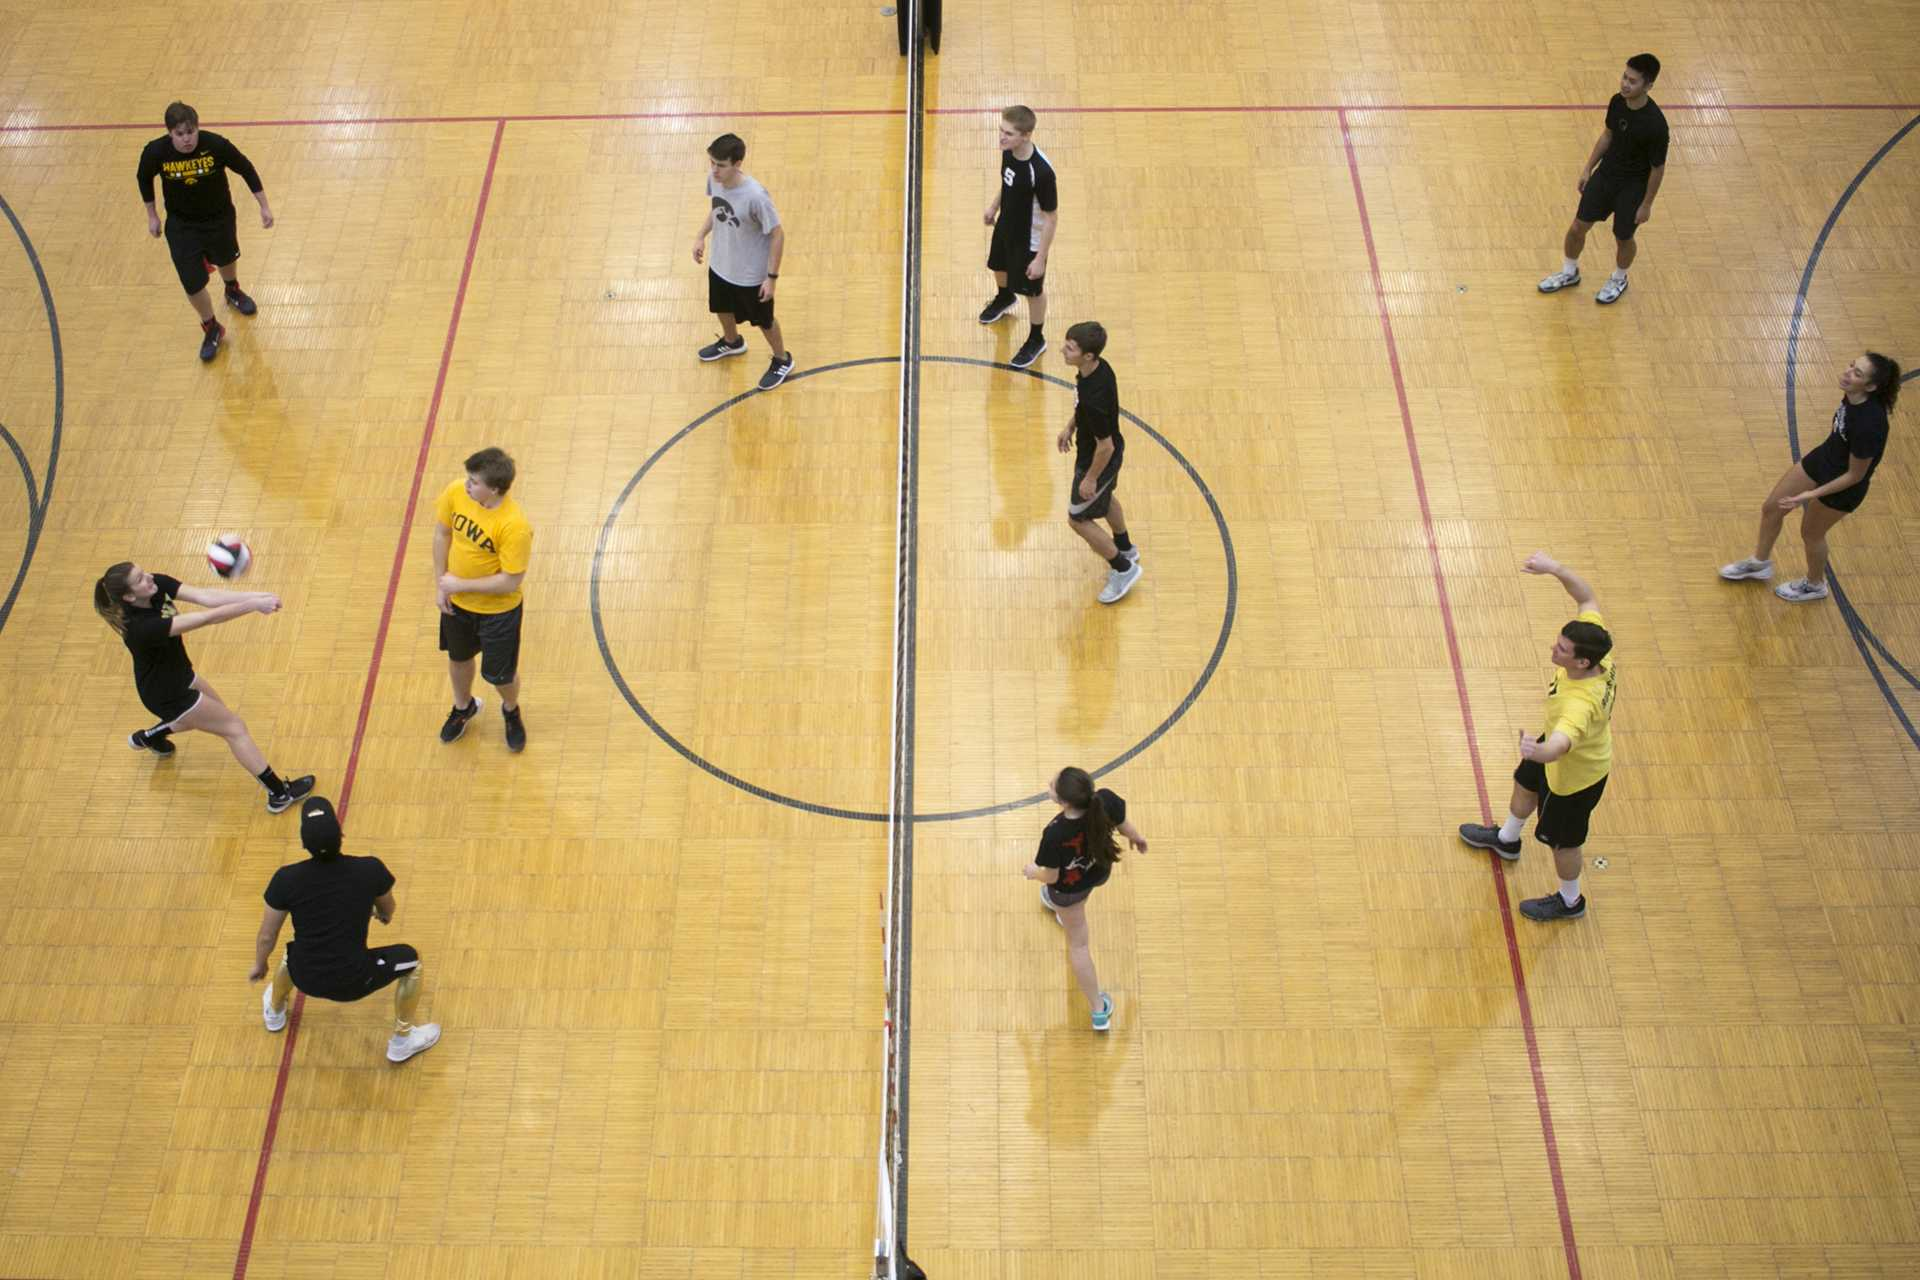 University of Iowa students play a charity game of volleyball in the Field House on Sunday, Dec. 3, 2017. The money raised from the event is going to go towards building water wells in other countries. (Joseph Cress/The Daily Iowan)